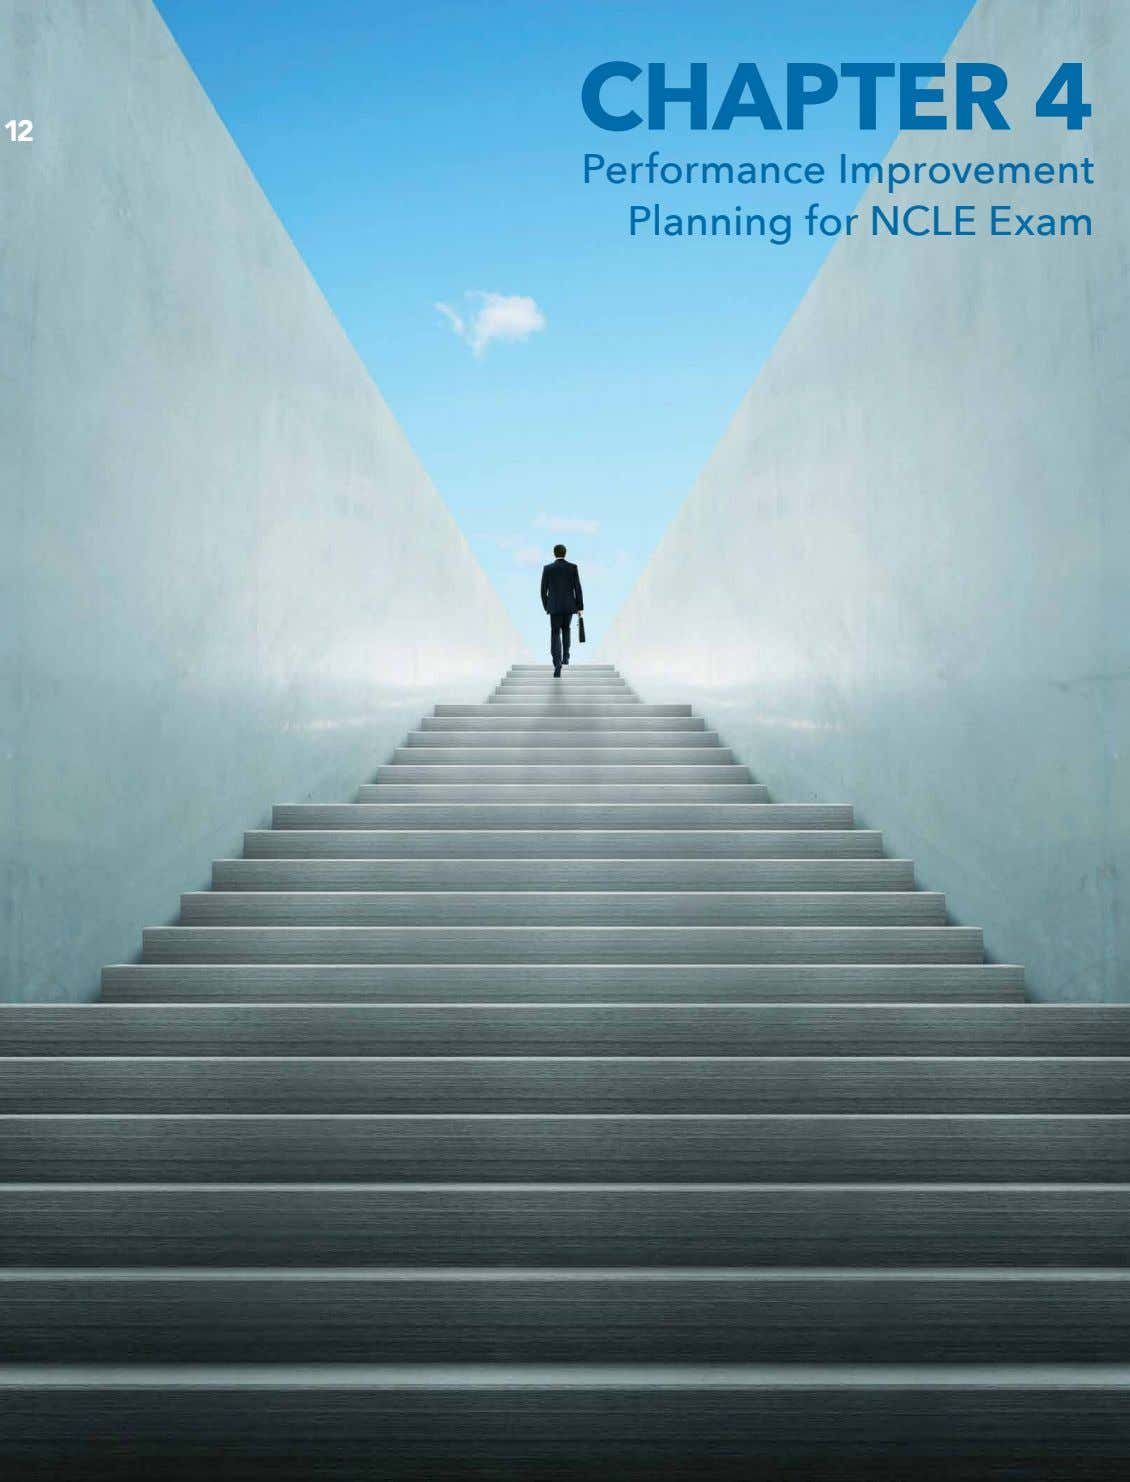 CHAPTER 4 12 12 Performance Improvement Planning for NCLE Exam www.mcreelearningcenter.com/exam-prep/national-contact-lens-examiners-ncle-exam/ UTest Prep is the only